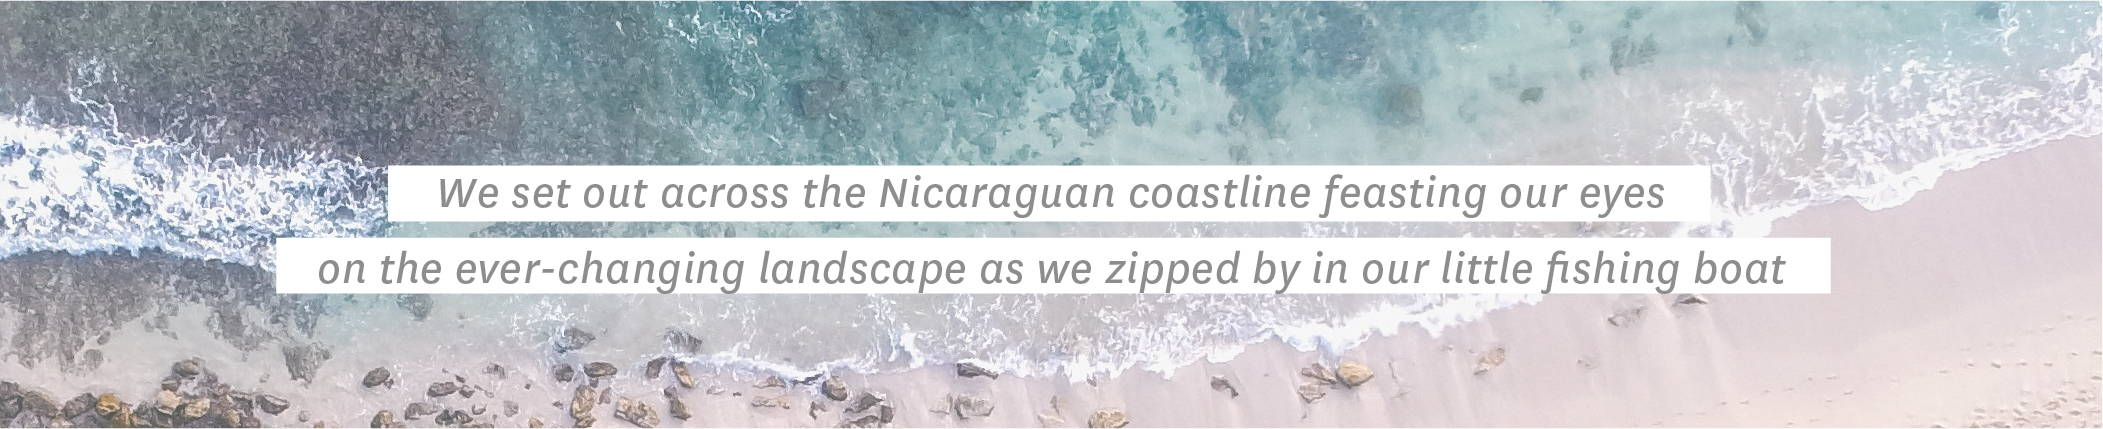 We set out across the Nicaraguan coastline feasting our eyes on the ever-changing landscape as we zipped by in our little fishing boat.